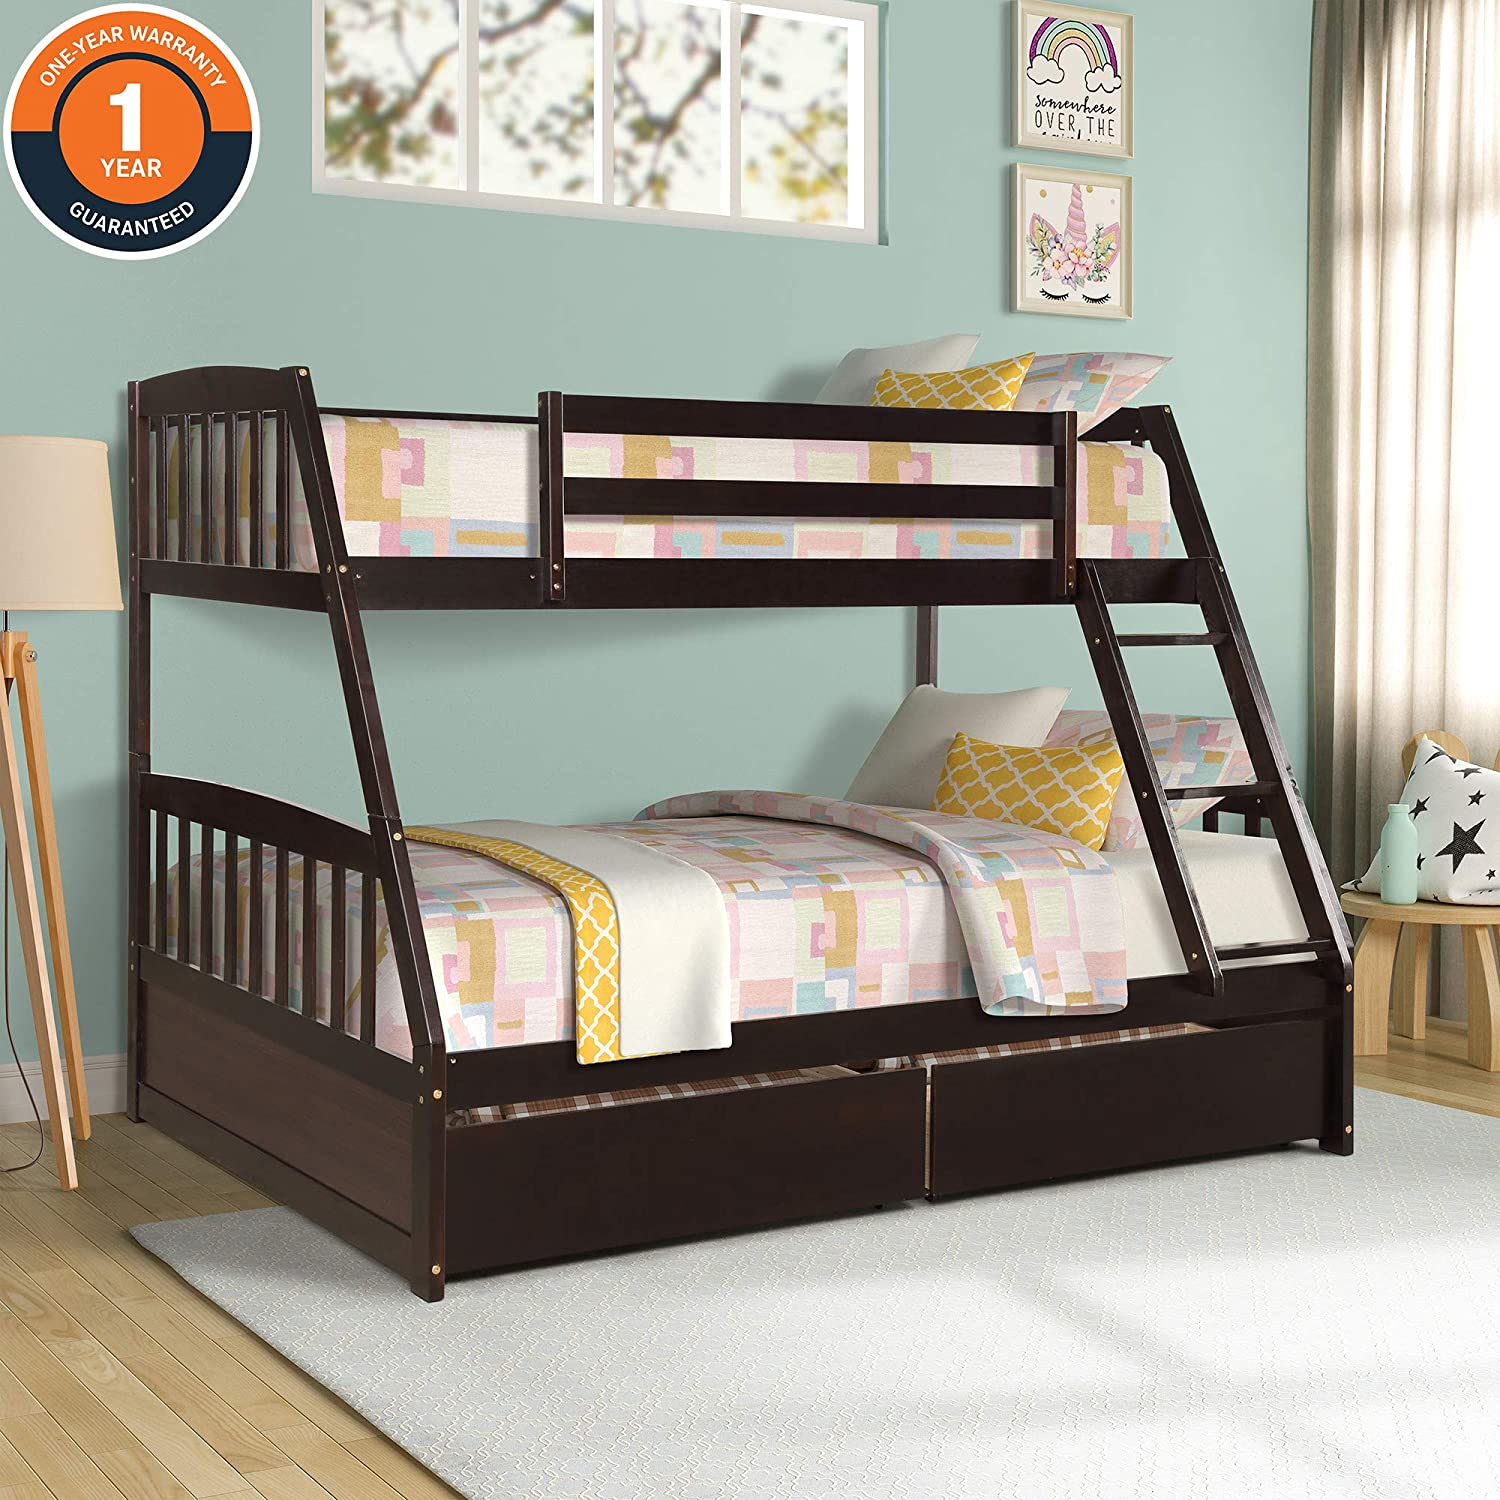 Solid Wood Twin Over Full Bunk Bed, with Two Storage Drawers and Removable Ladder, Bed Platform Frame for Kids, Teens, Guest Rooms